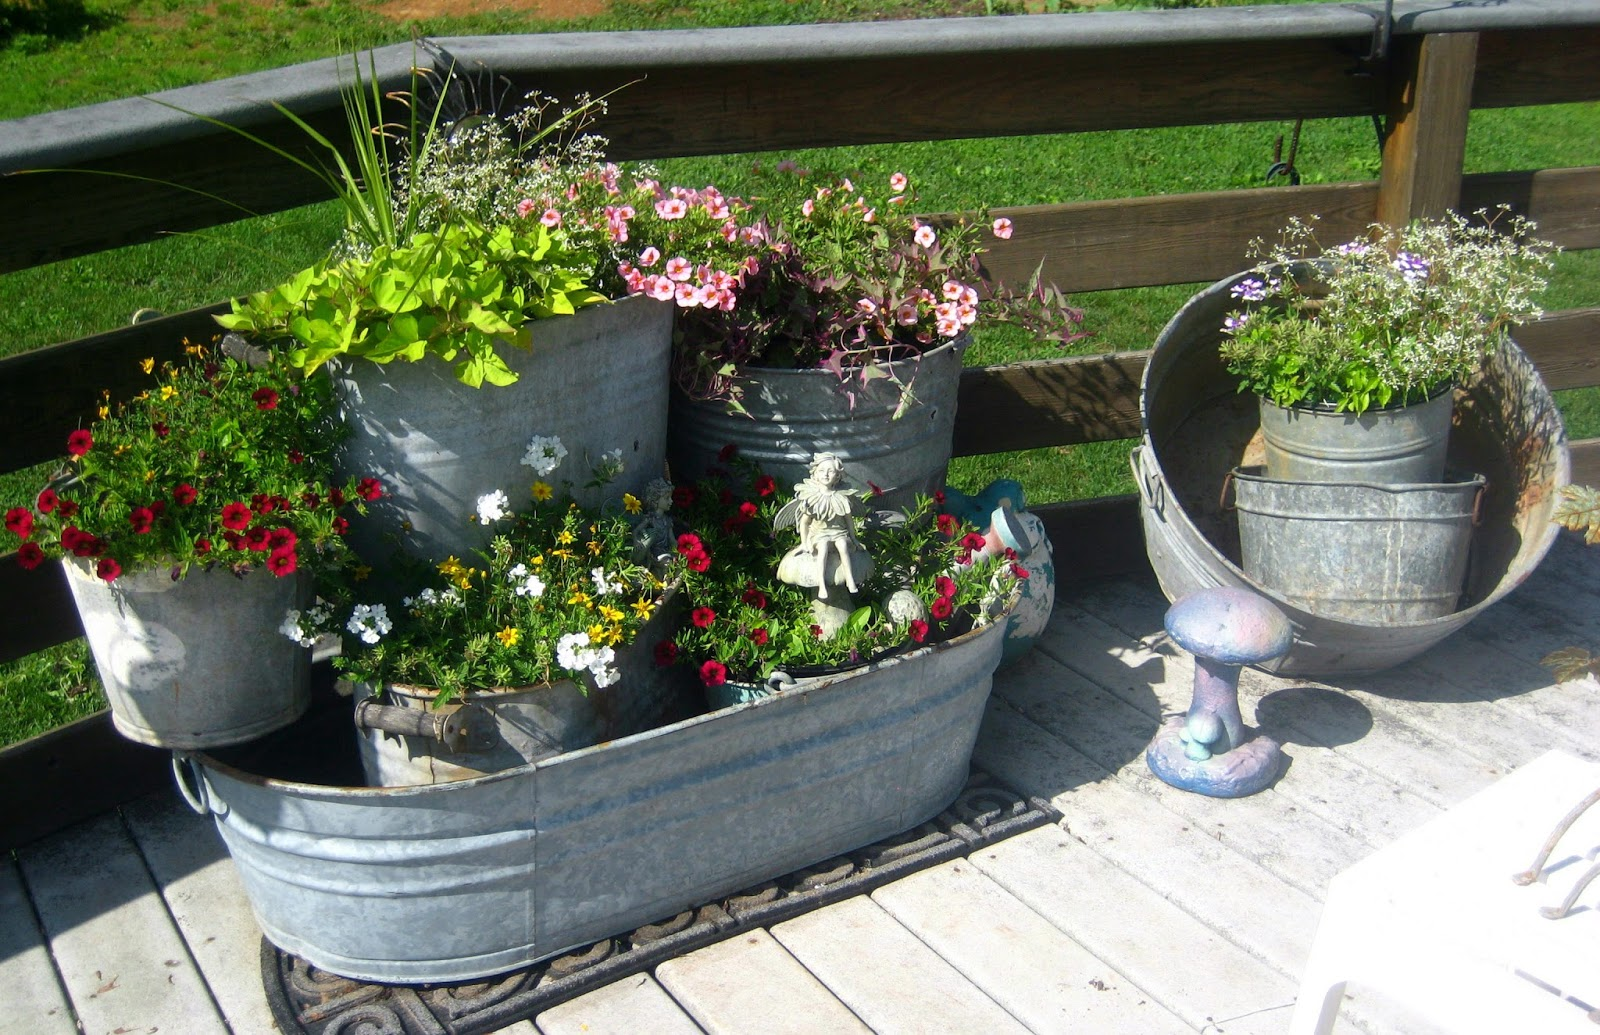 Meadow muffin gardens annual flowers for container gardening annual flowers for container gardening izmirmasajfo